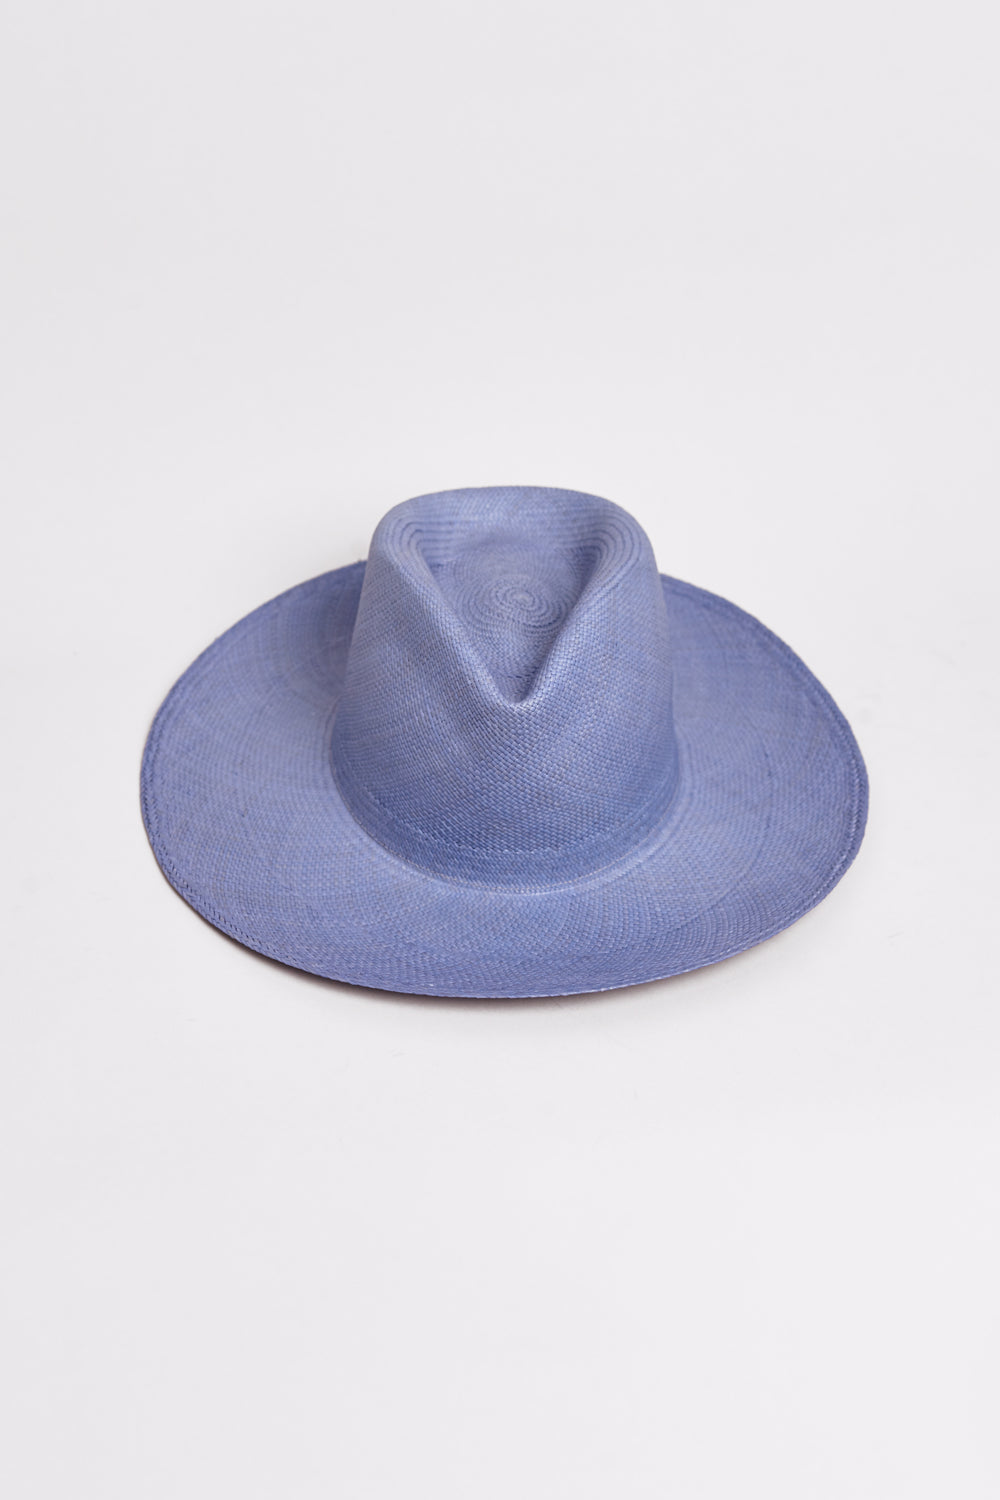 Pinch Hat in Denim Blue